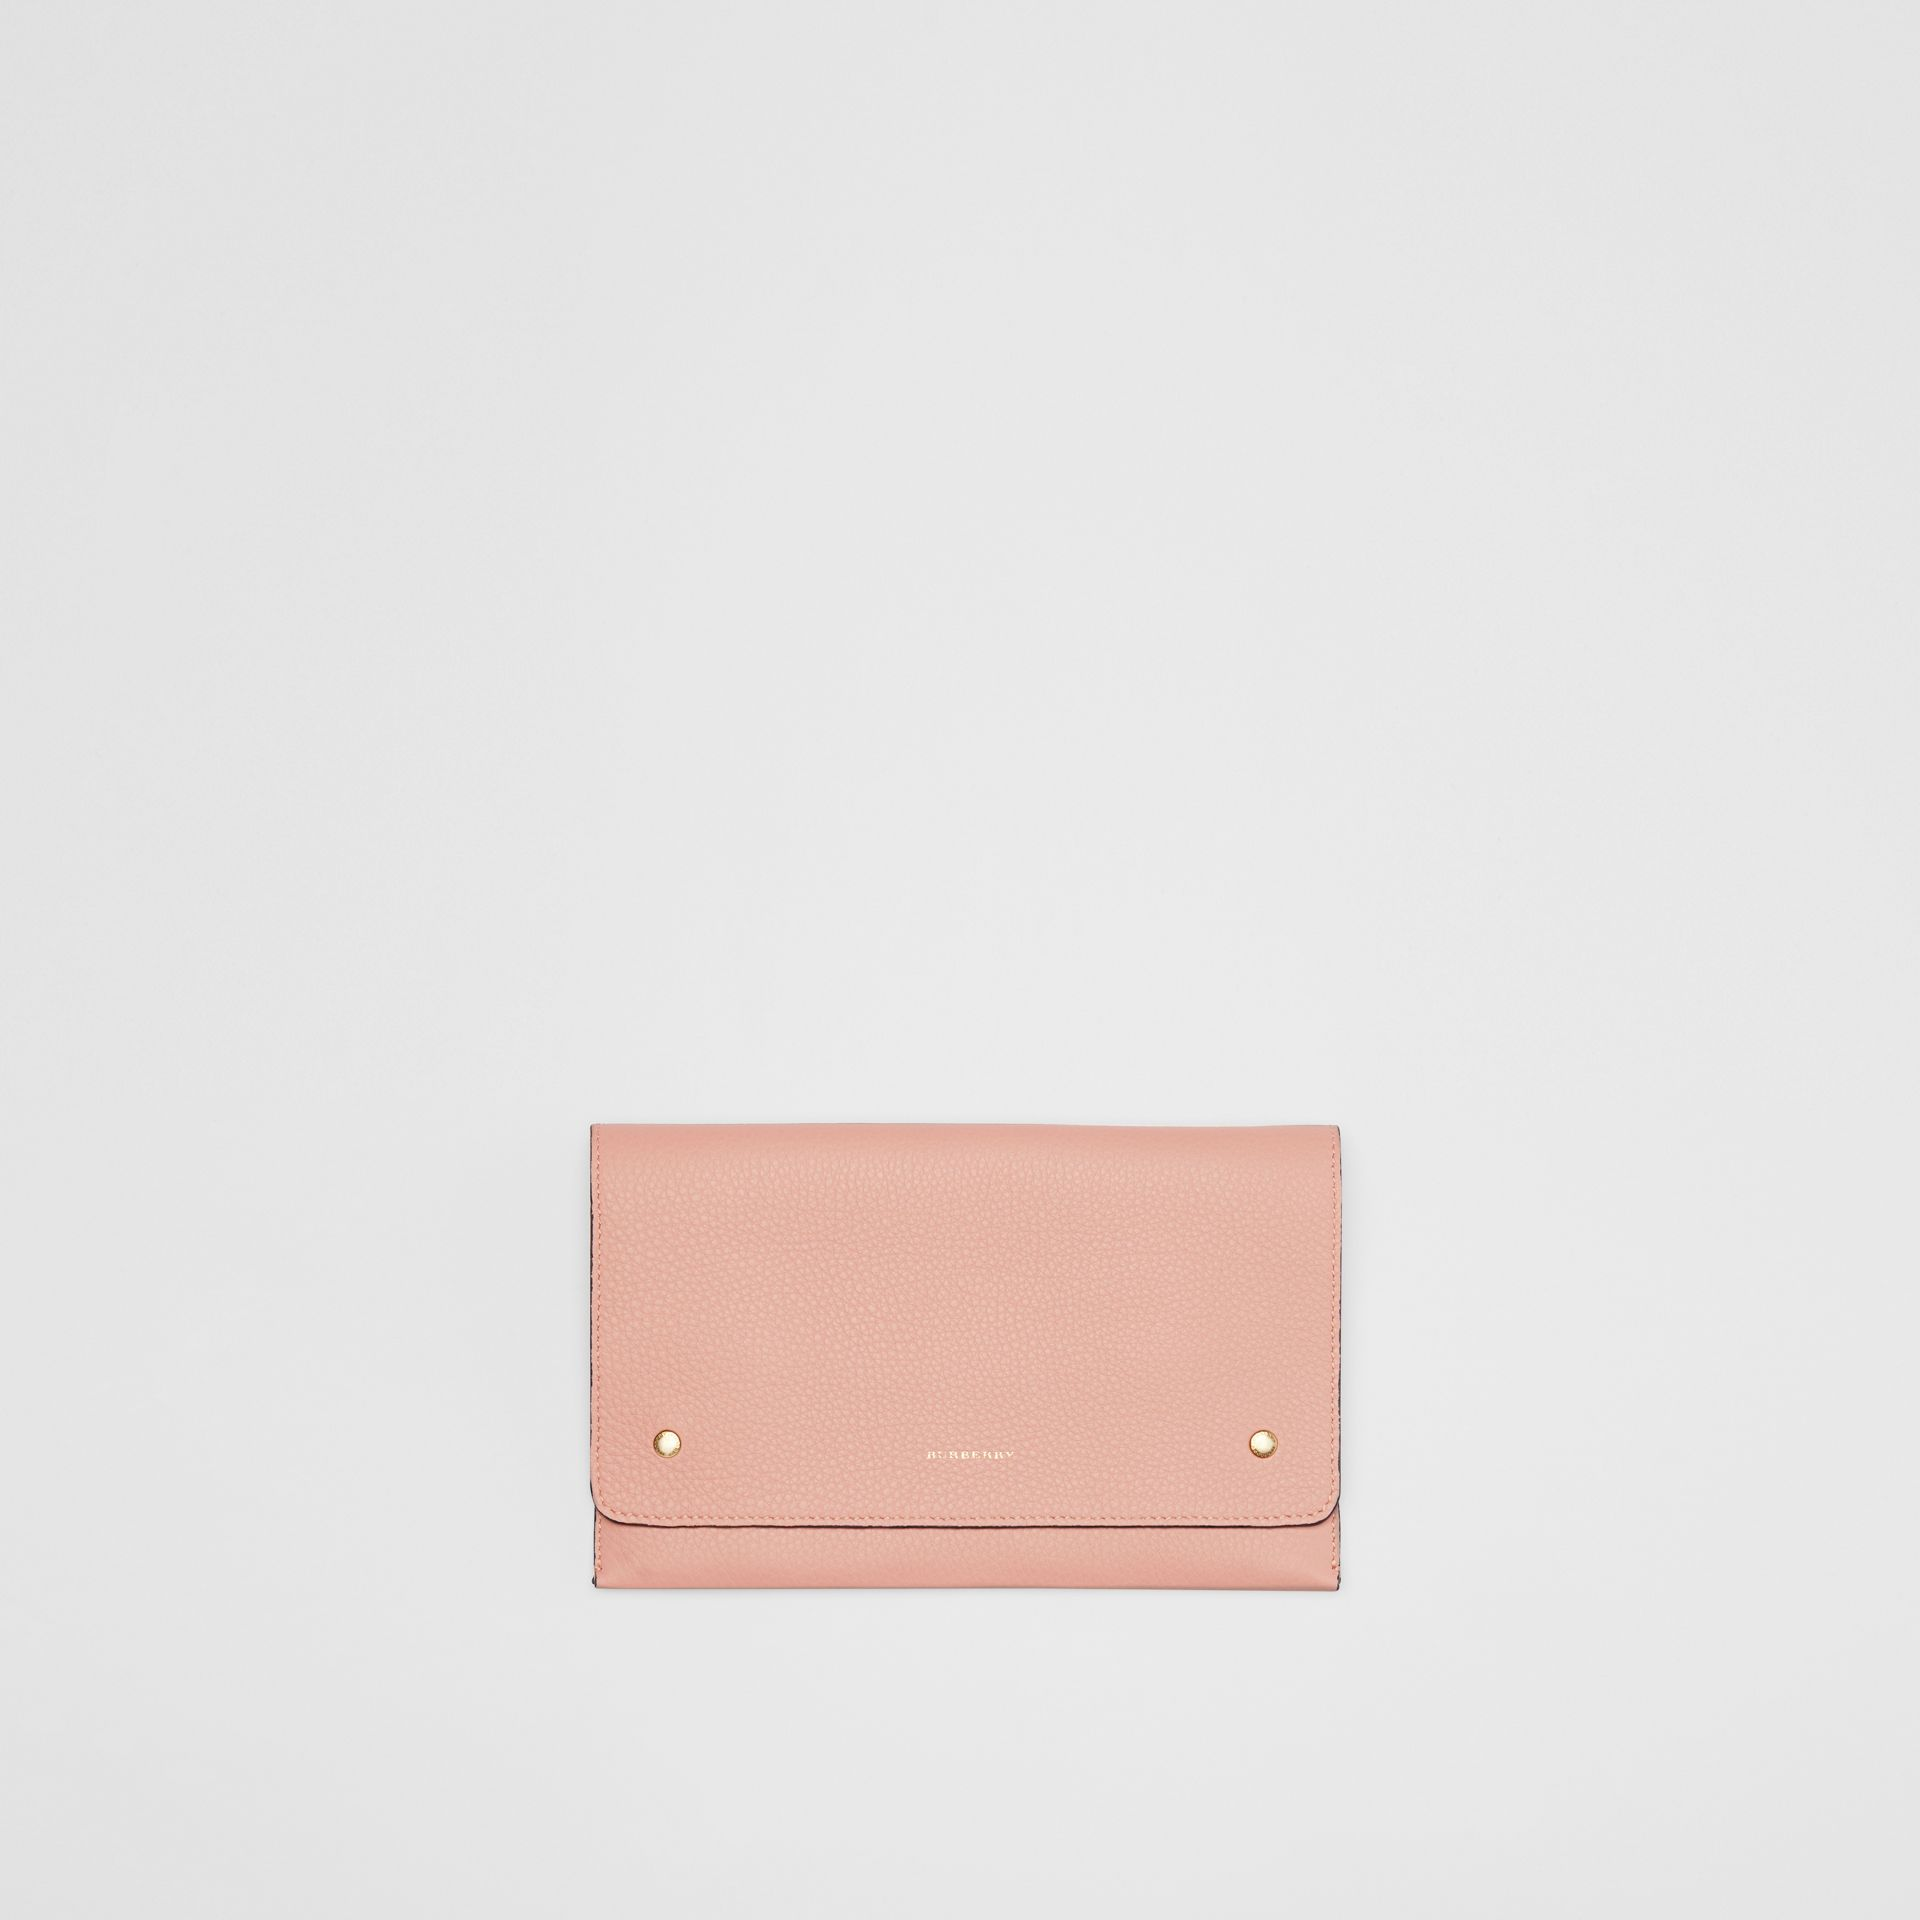 Two-tone Leather Wristlet Clutch in Ash Rose - Women | Burberry Canada - gallery image 0